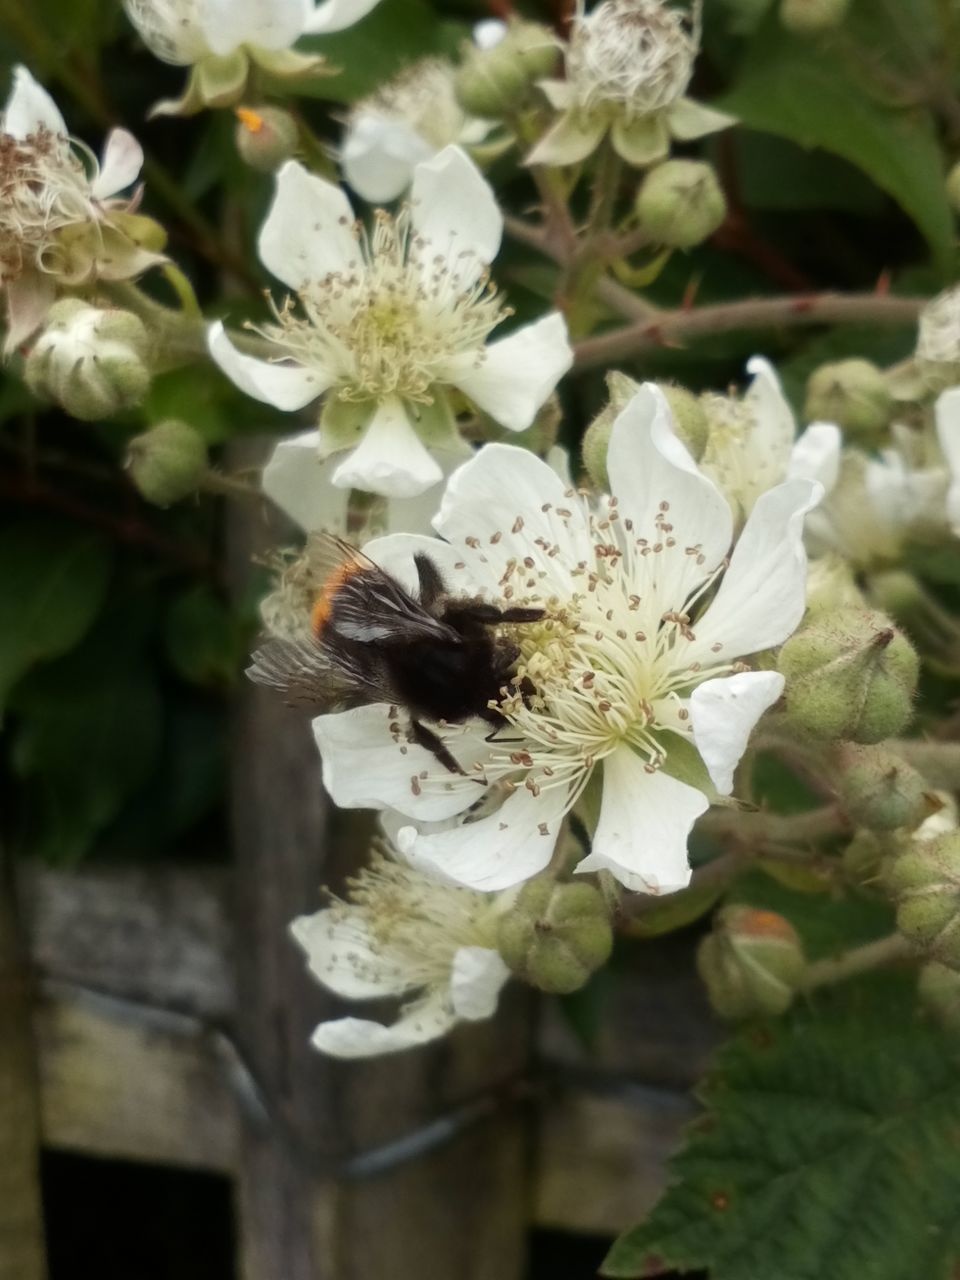 flowering plant, flower, fragility, vulnerability, plant, petal, growth, beauty in nature, freshness, flower head, bee, close-up, white color, animal themes, one animal, inflorescence, animal, invertebrate, insect, pollen, pollination, no people, outdoors, bumblebee